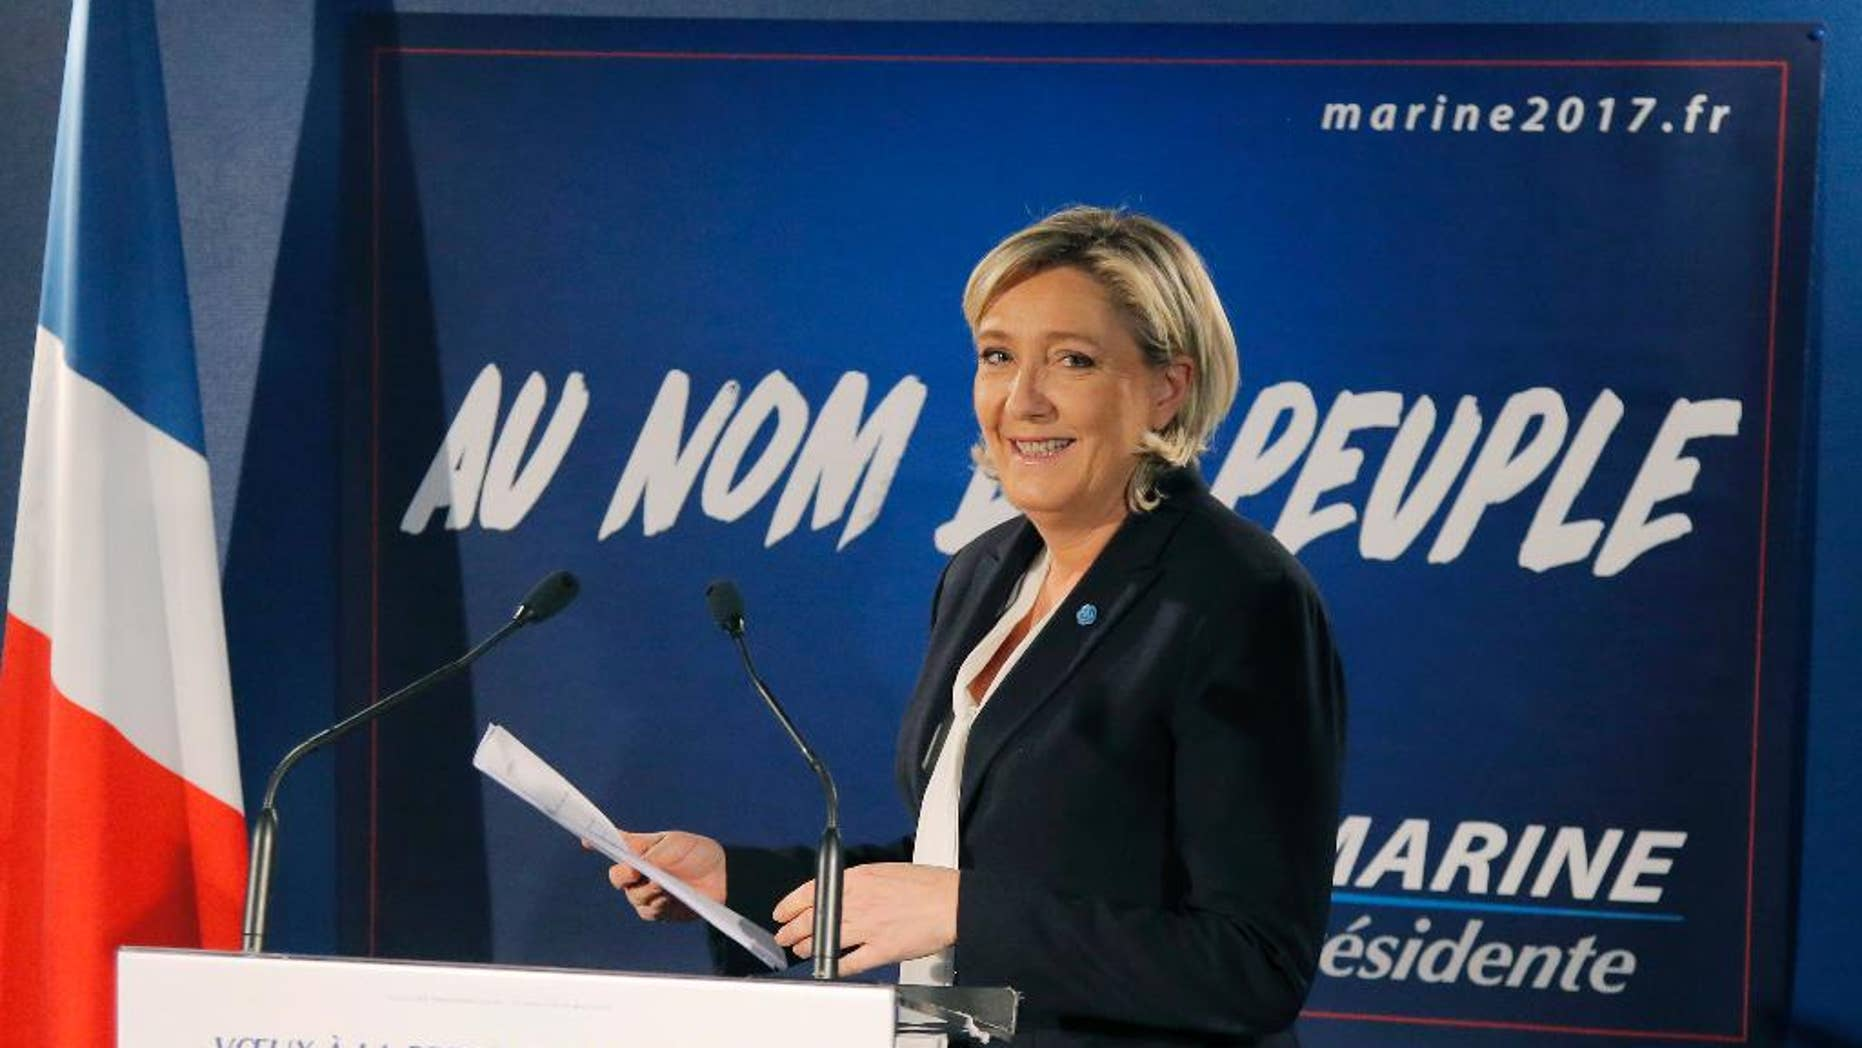 Far-right leader and candidate for next spring presidential elections Marine le Pen, arrives for her New Year's address to the media in Paris, Wednesday, Jan. 4, 2017. French far right presidential candidate Marine Le Pen is cheering Ford Motor Co.'s decision to shift investment from Mexico to the U.S., calling it a victory for the protectionist policies she champions. (AP Photo/Michel Euler)